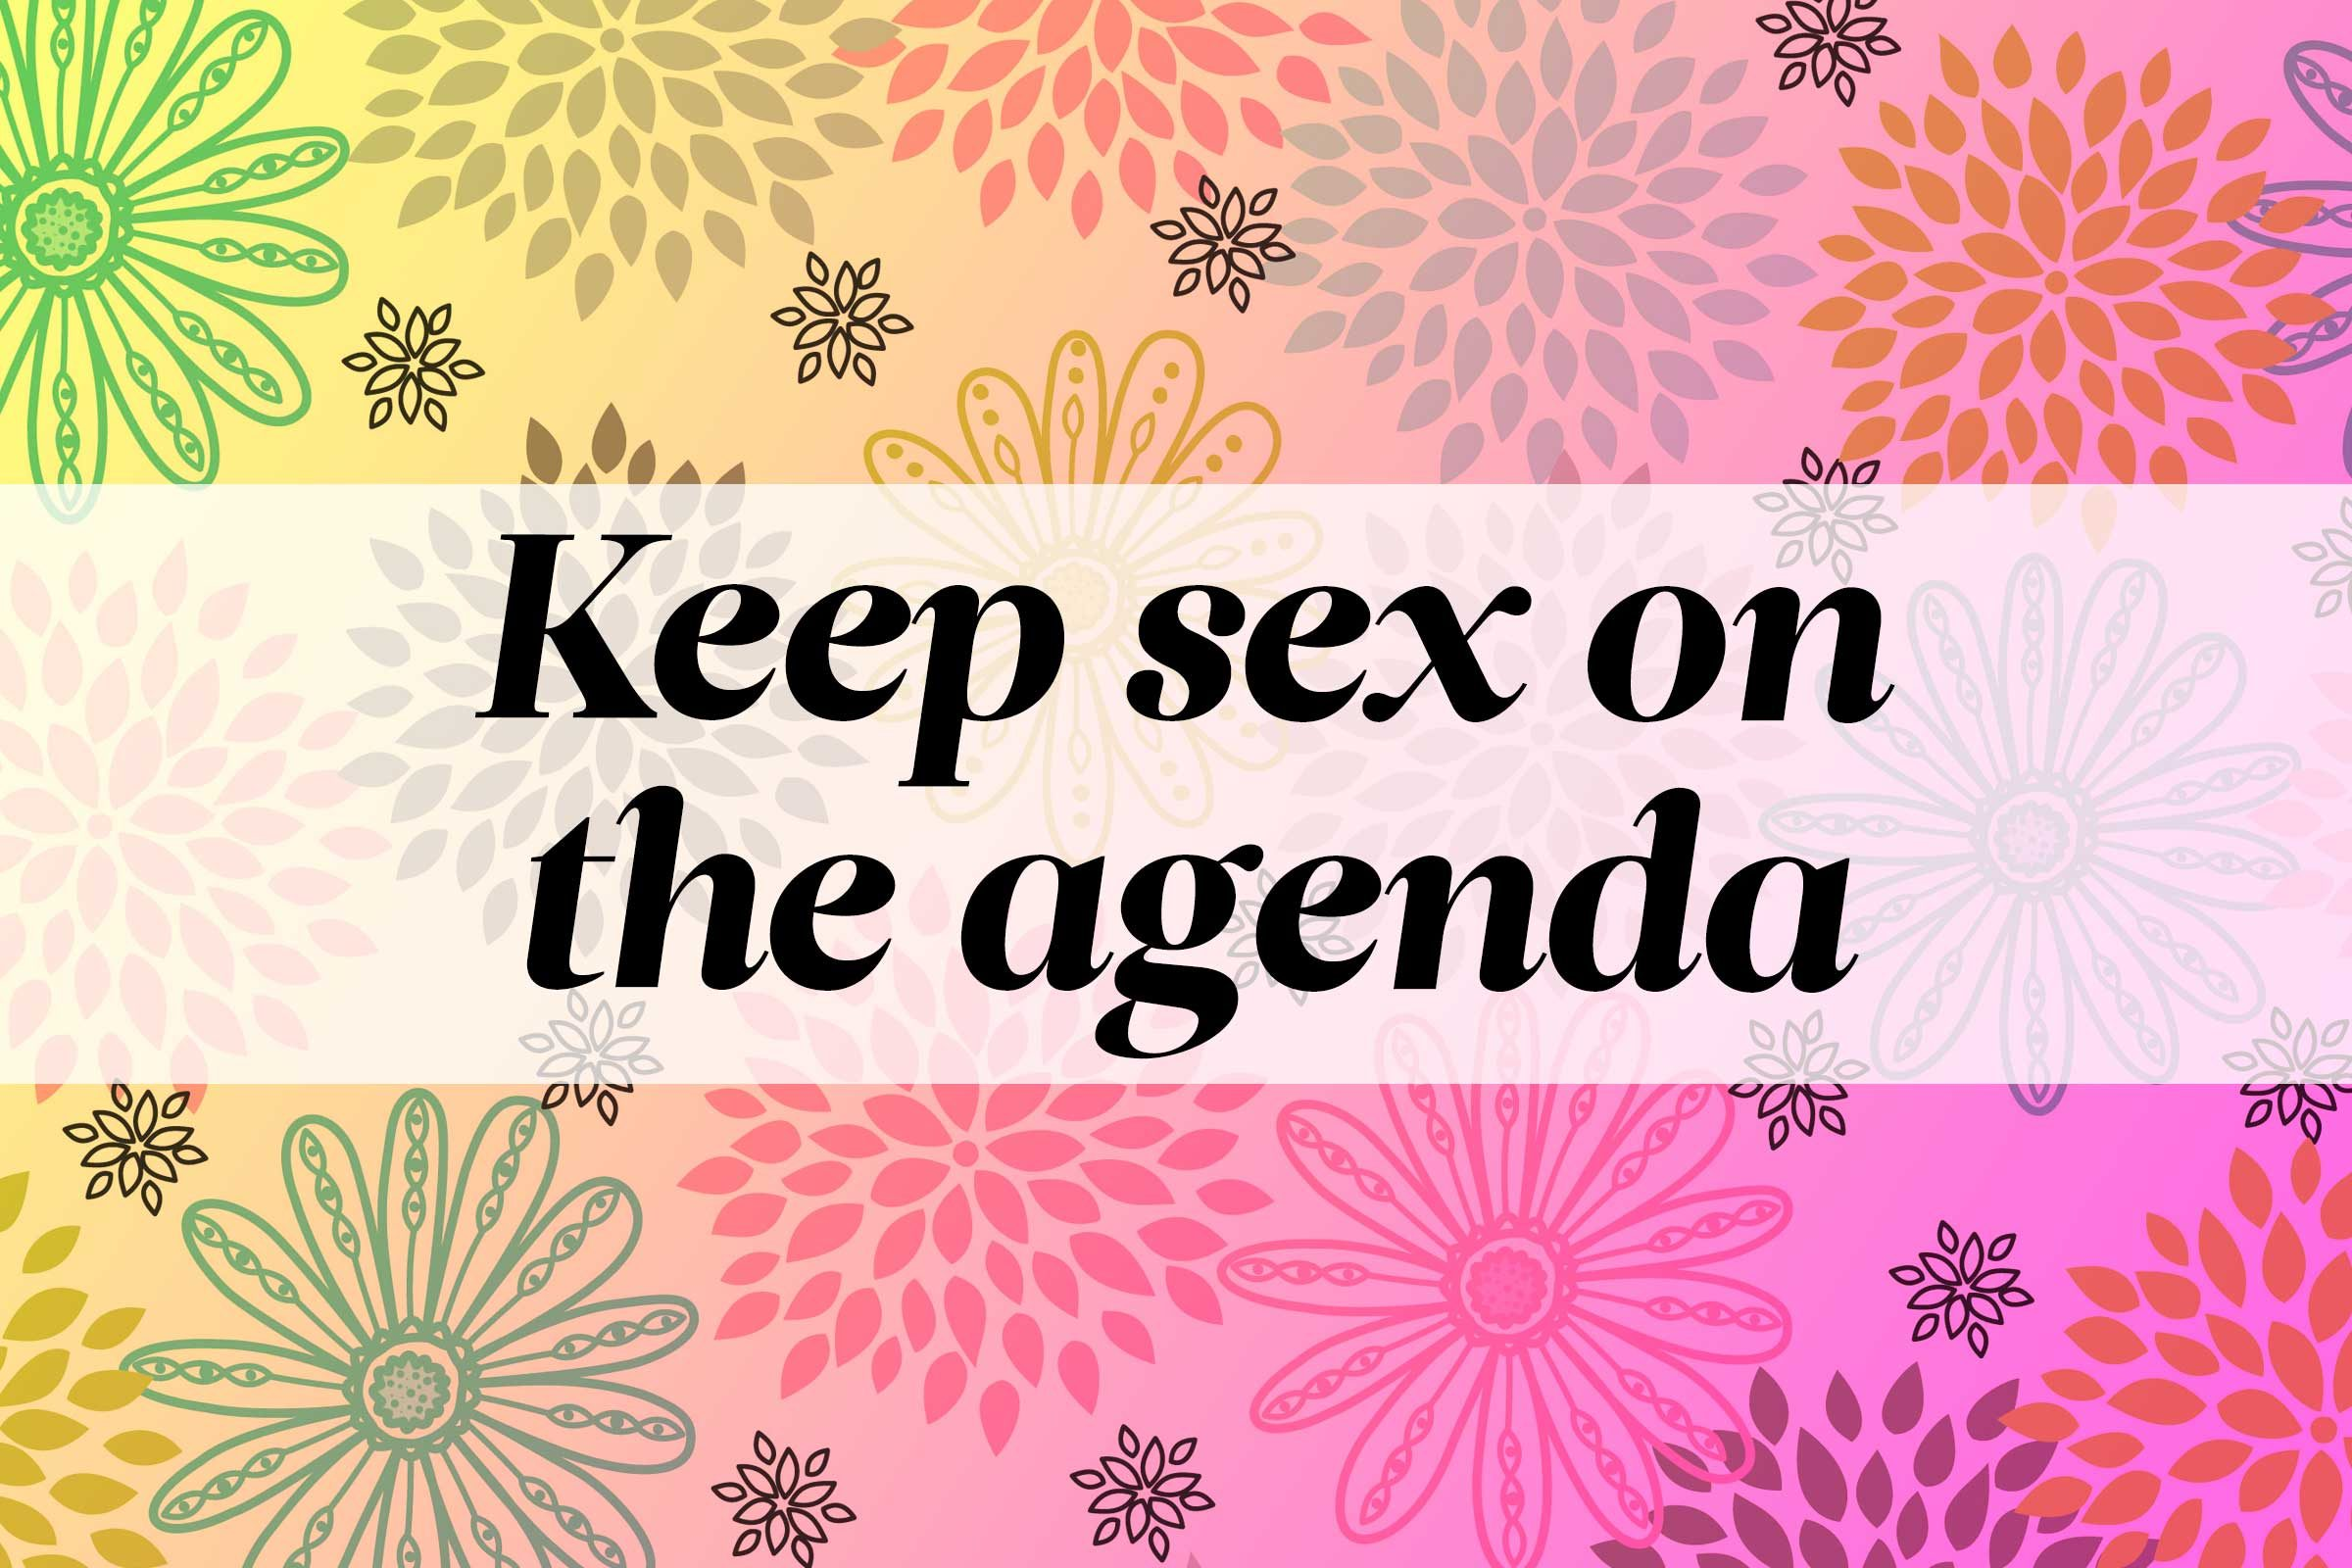 Go ahead and schedule sex